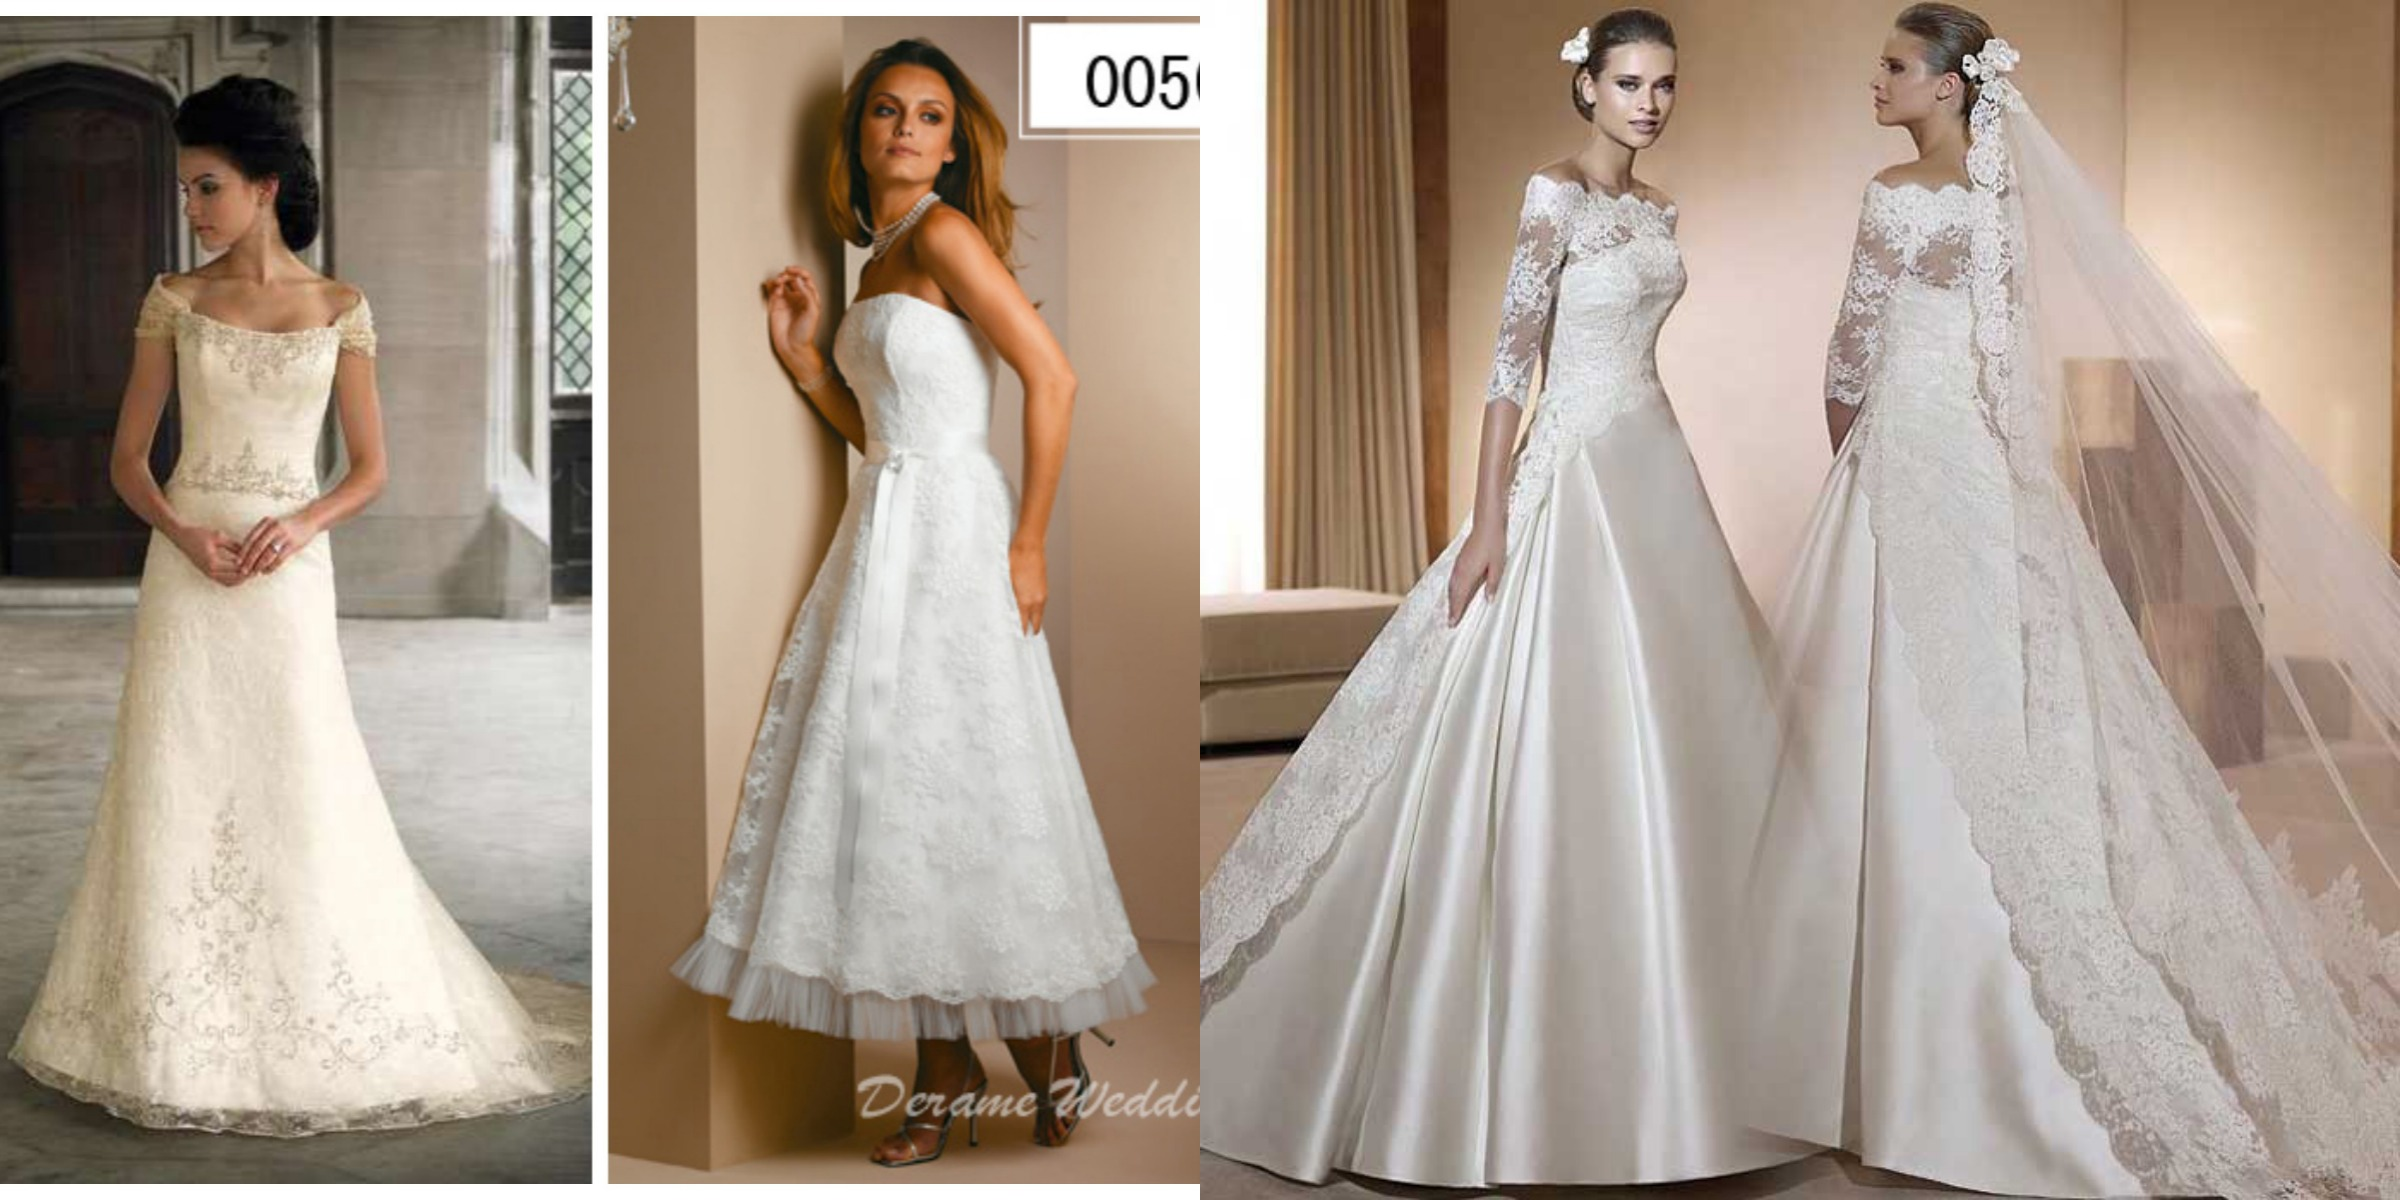 Wedding Dresses For Petite Woman - Wedding Short Dresses